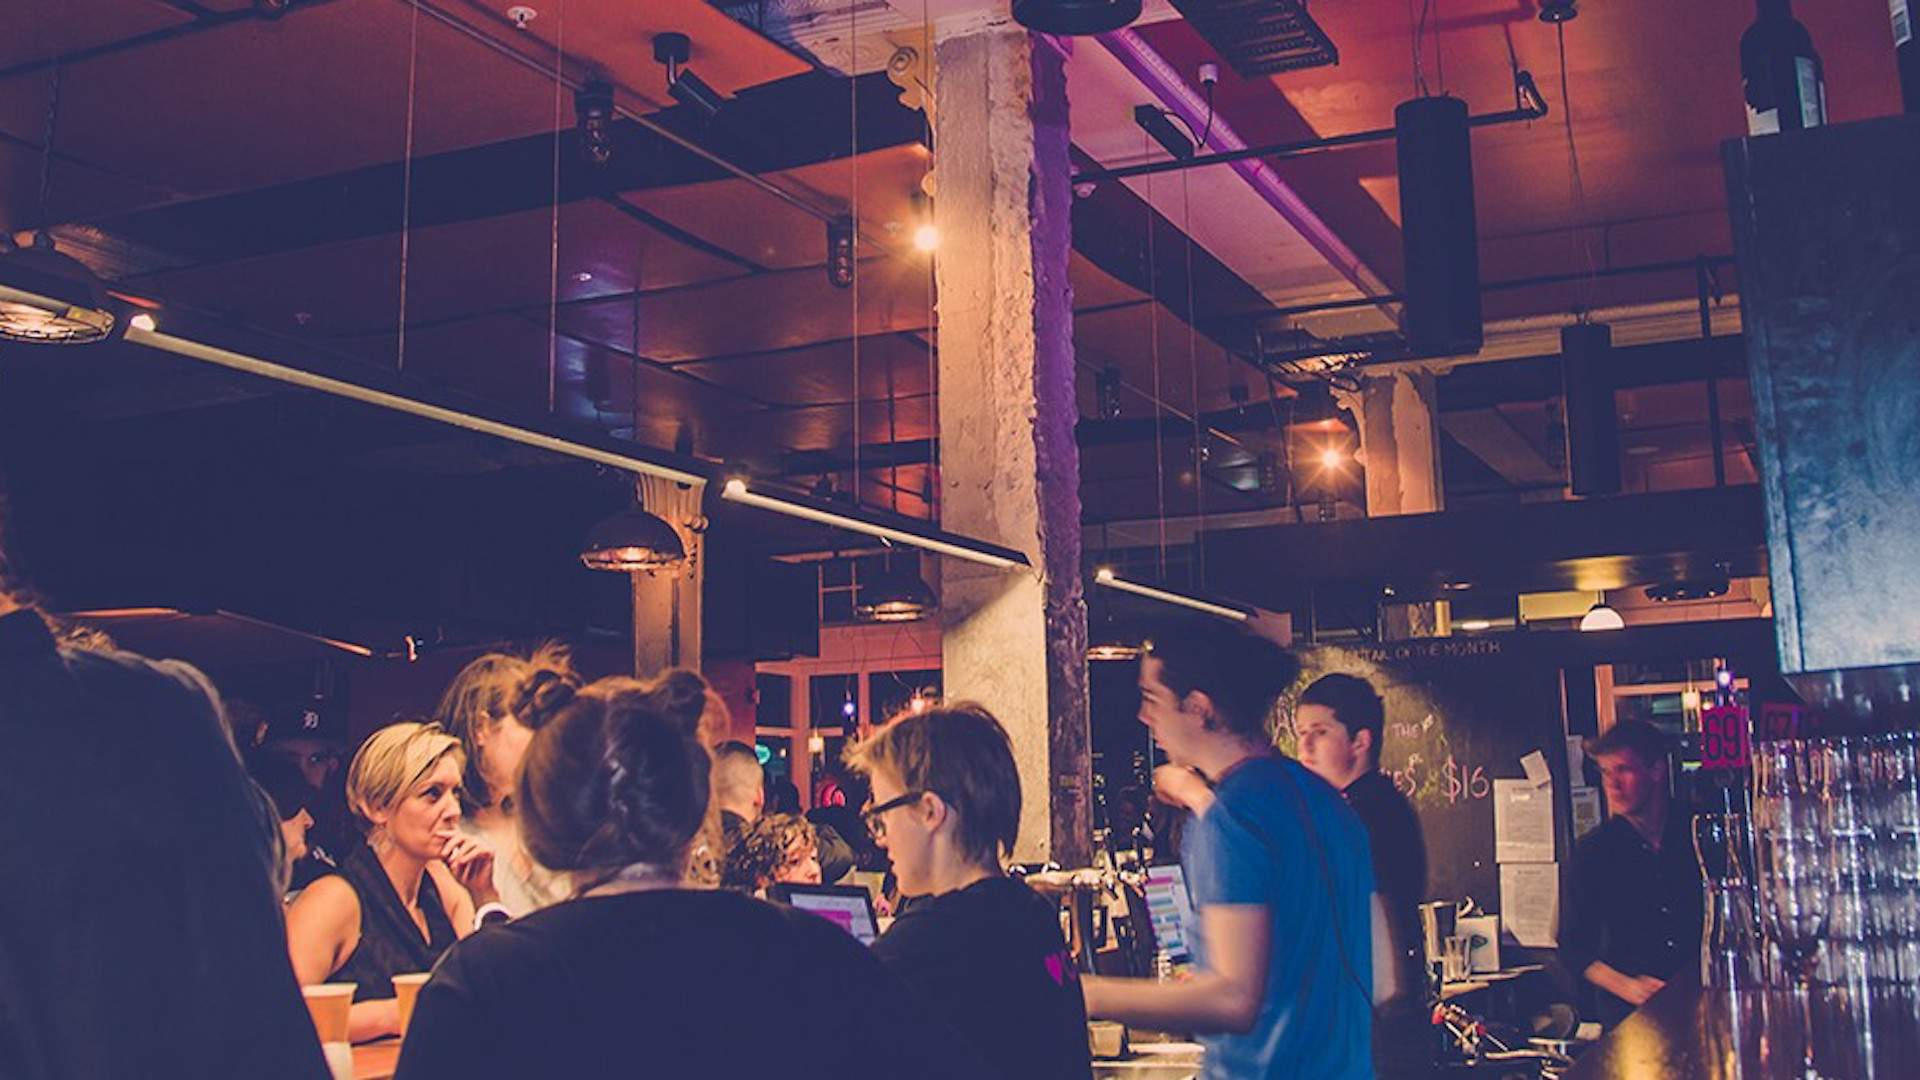 You'll Need a Password to Enter This Pop-Up Piano Bar